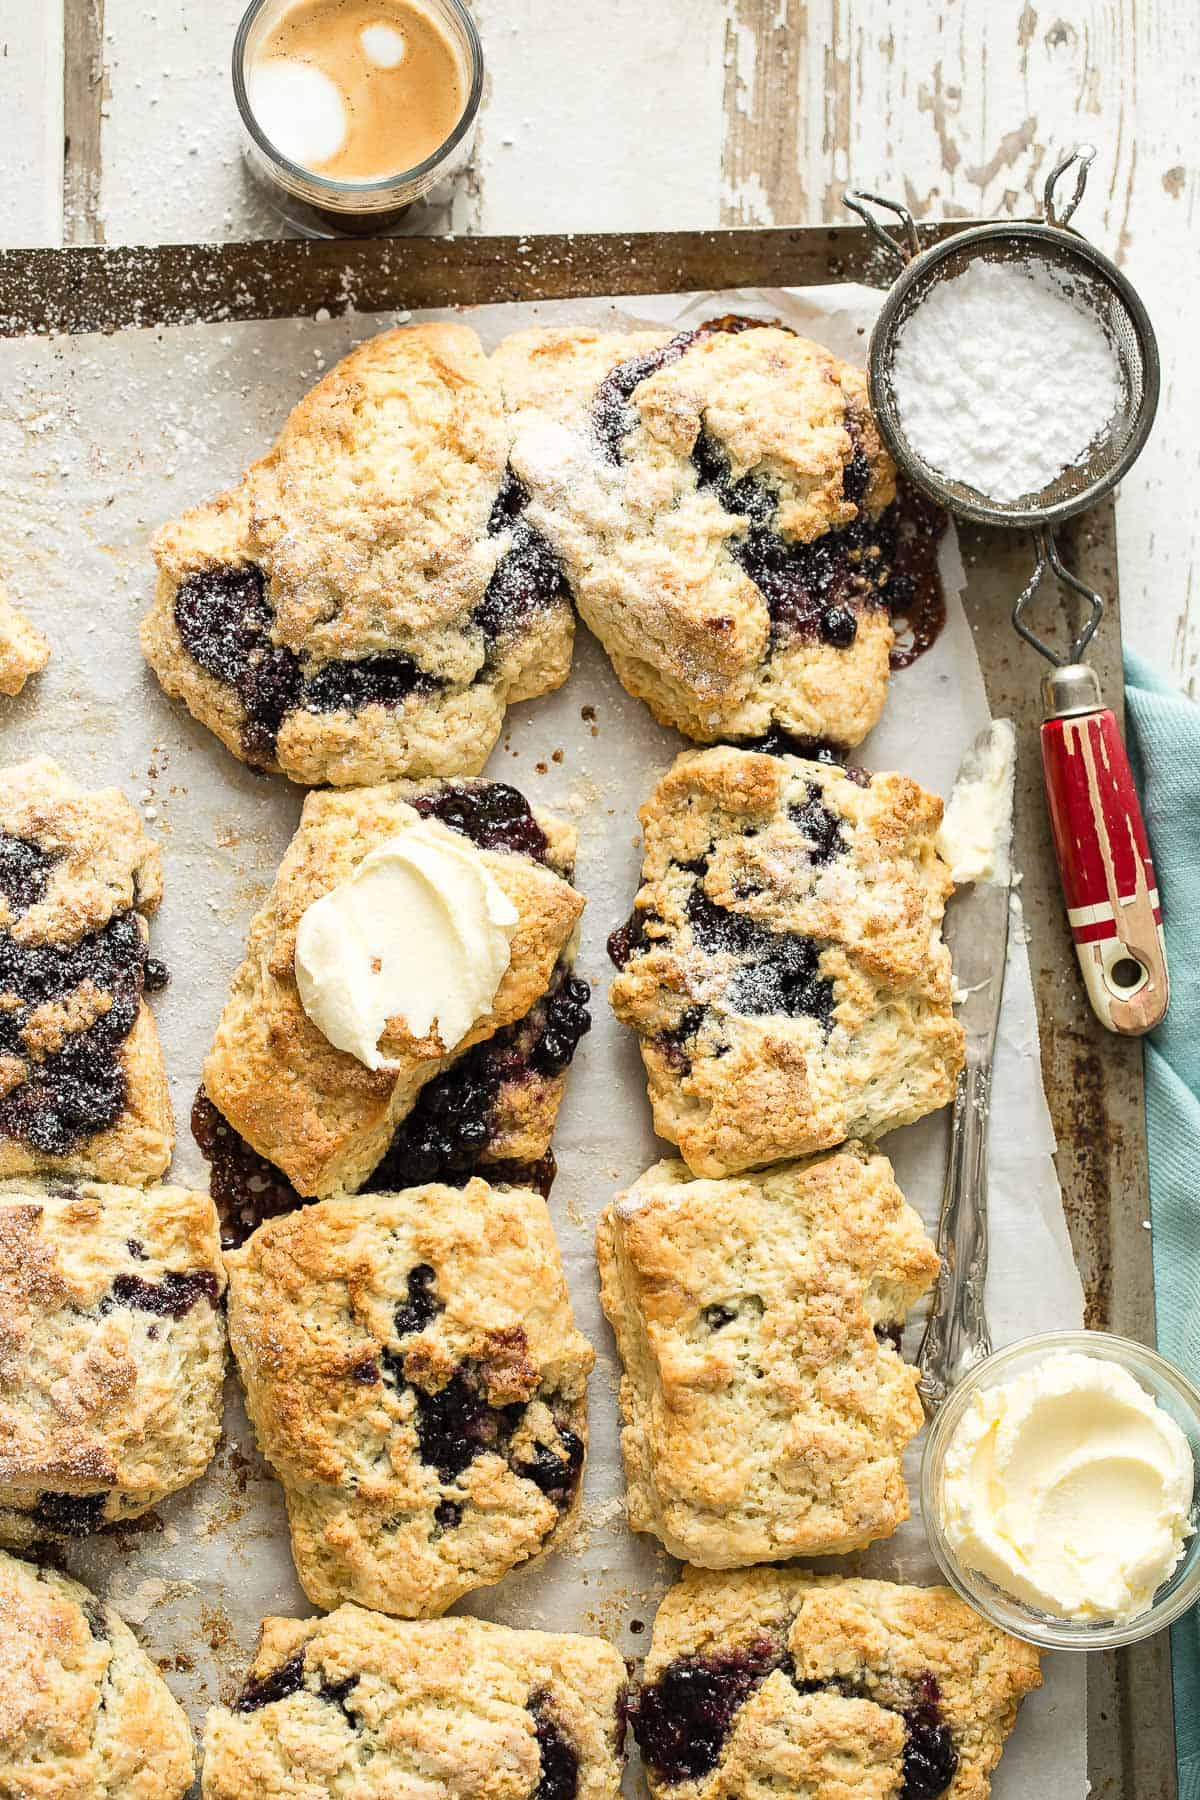 Homemade blueberry jam scones just like Starbucks